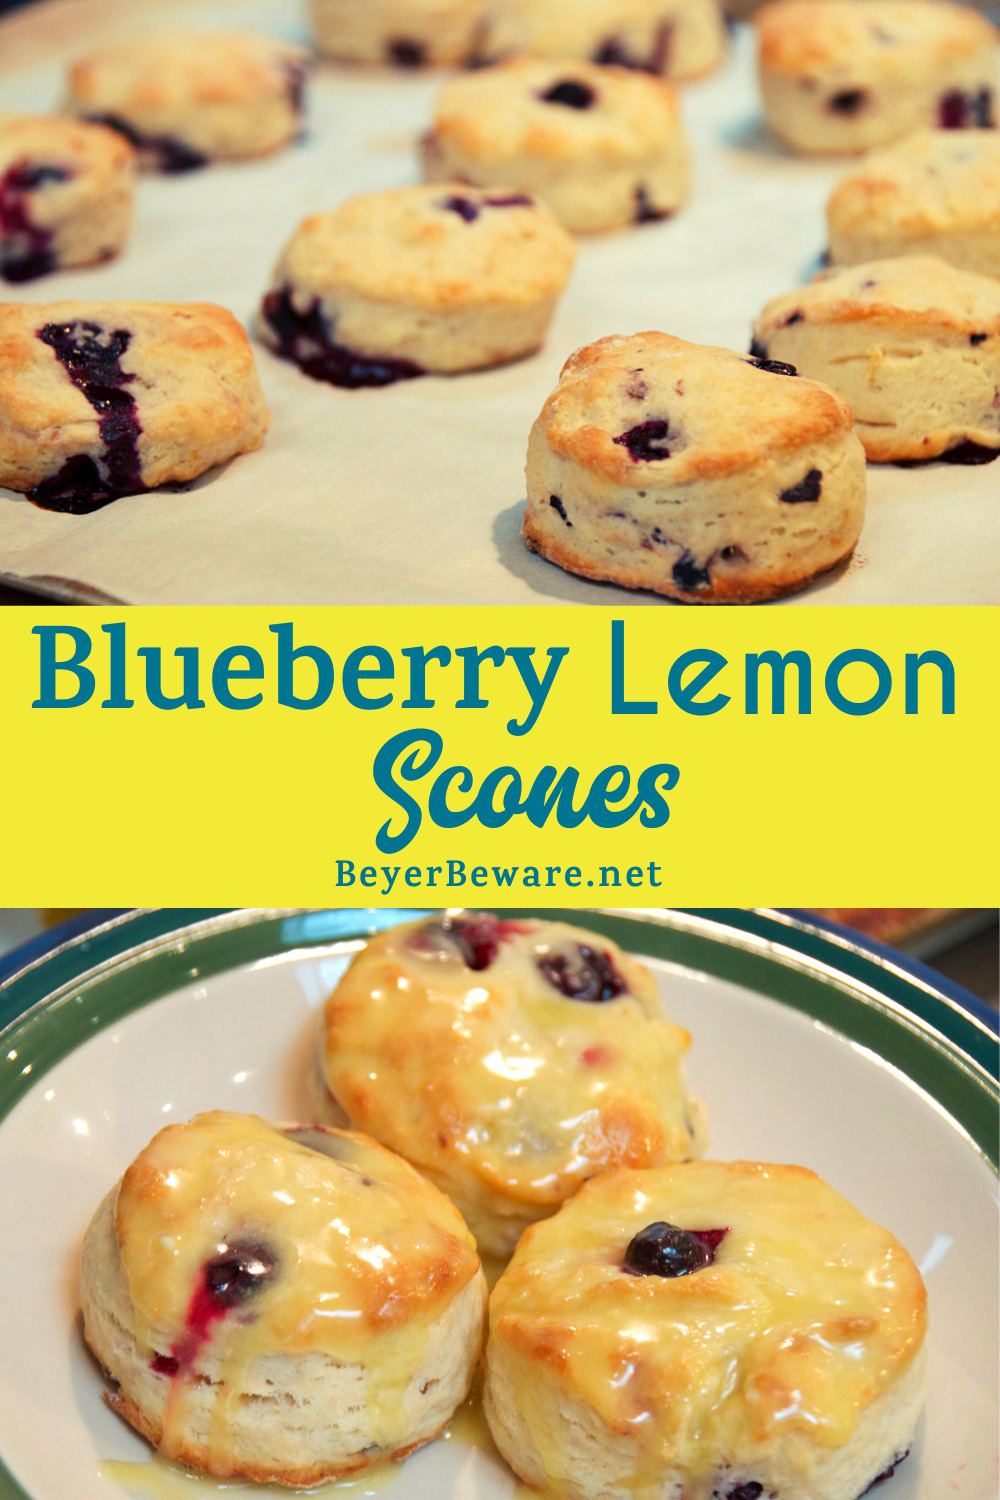 Blueberry lemon scones are the perfect homemade scone recipe with a delicate texture and the perfect combination of flavors with the fresh lemon and blueberries, topped with a simple lemon glaze.